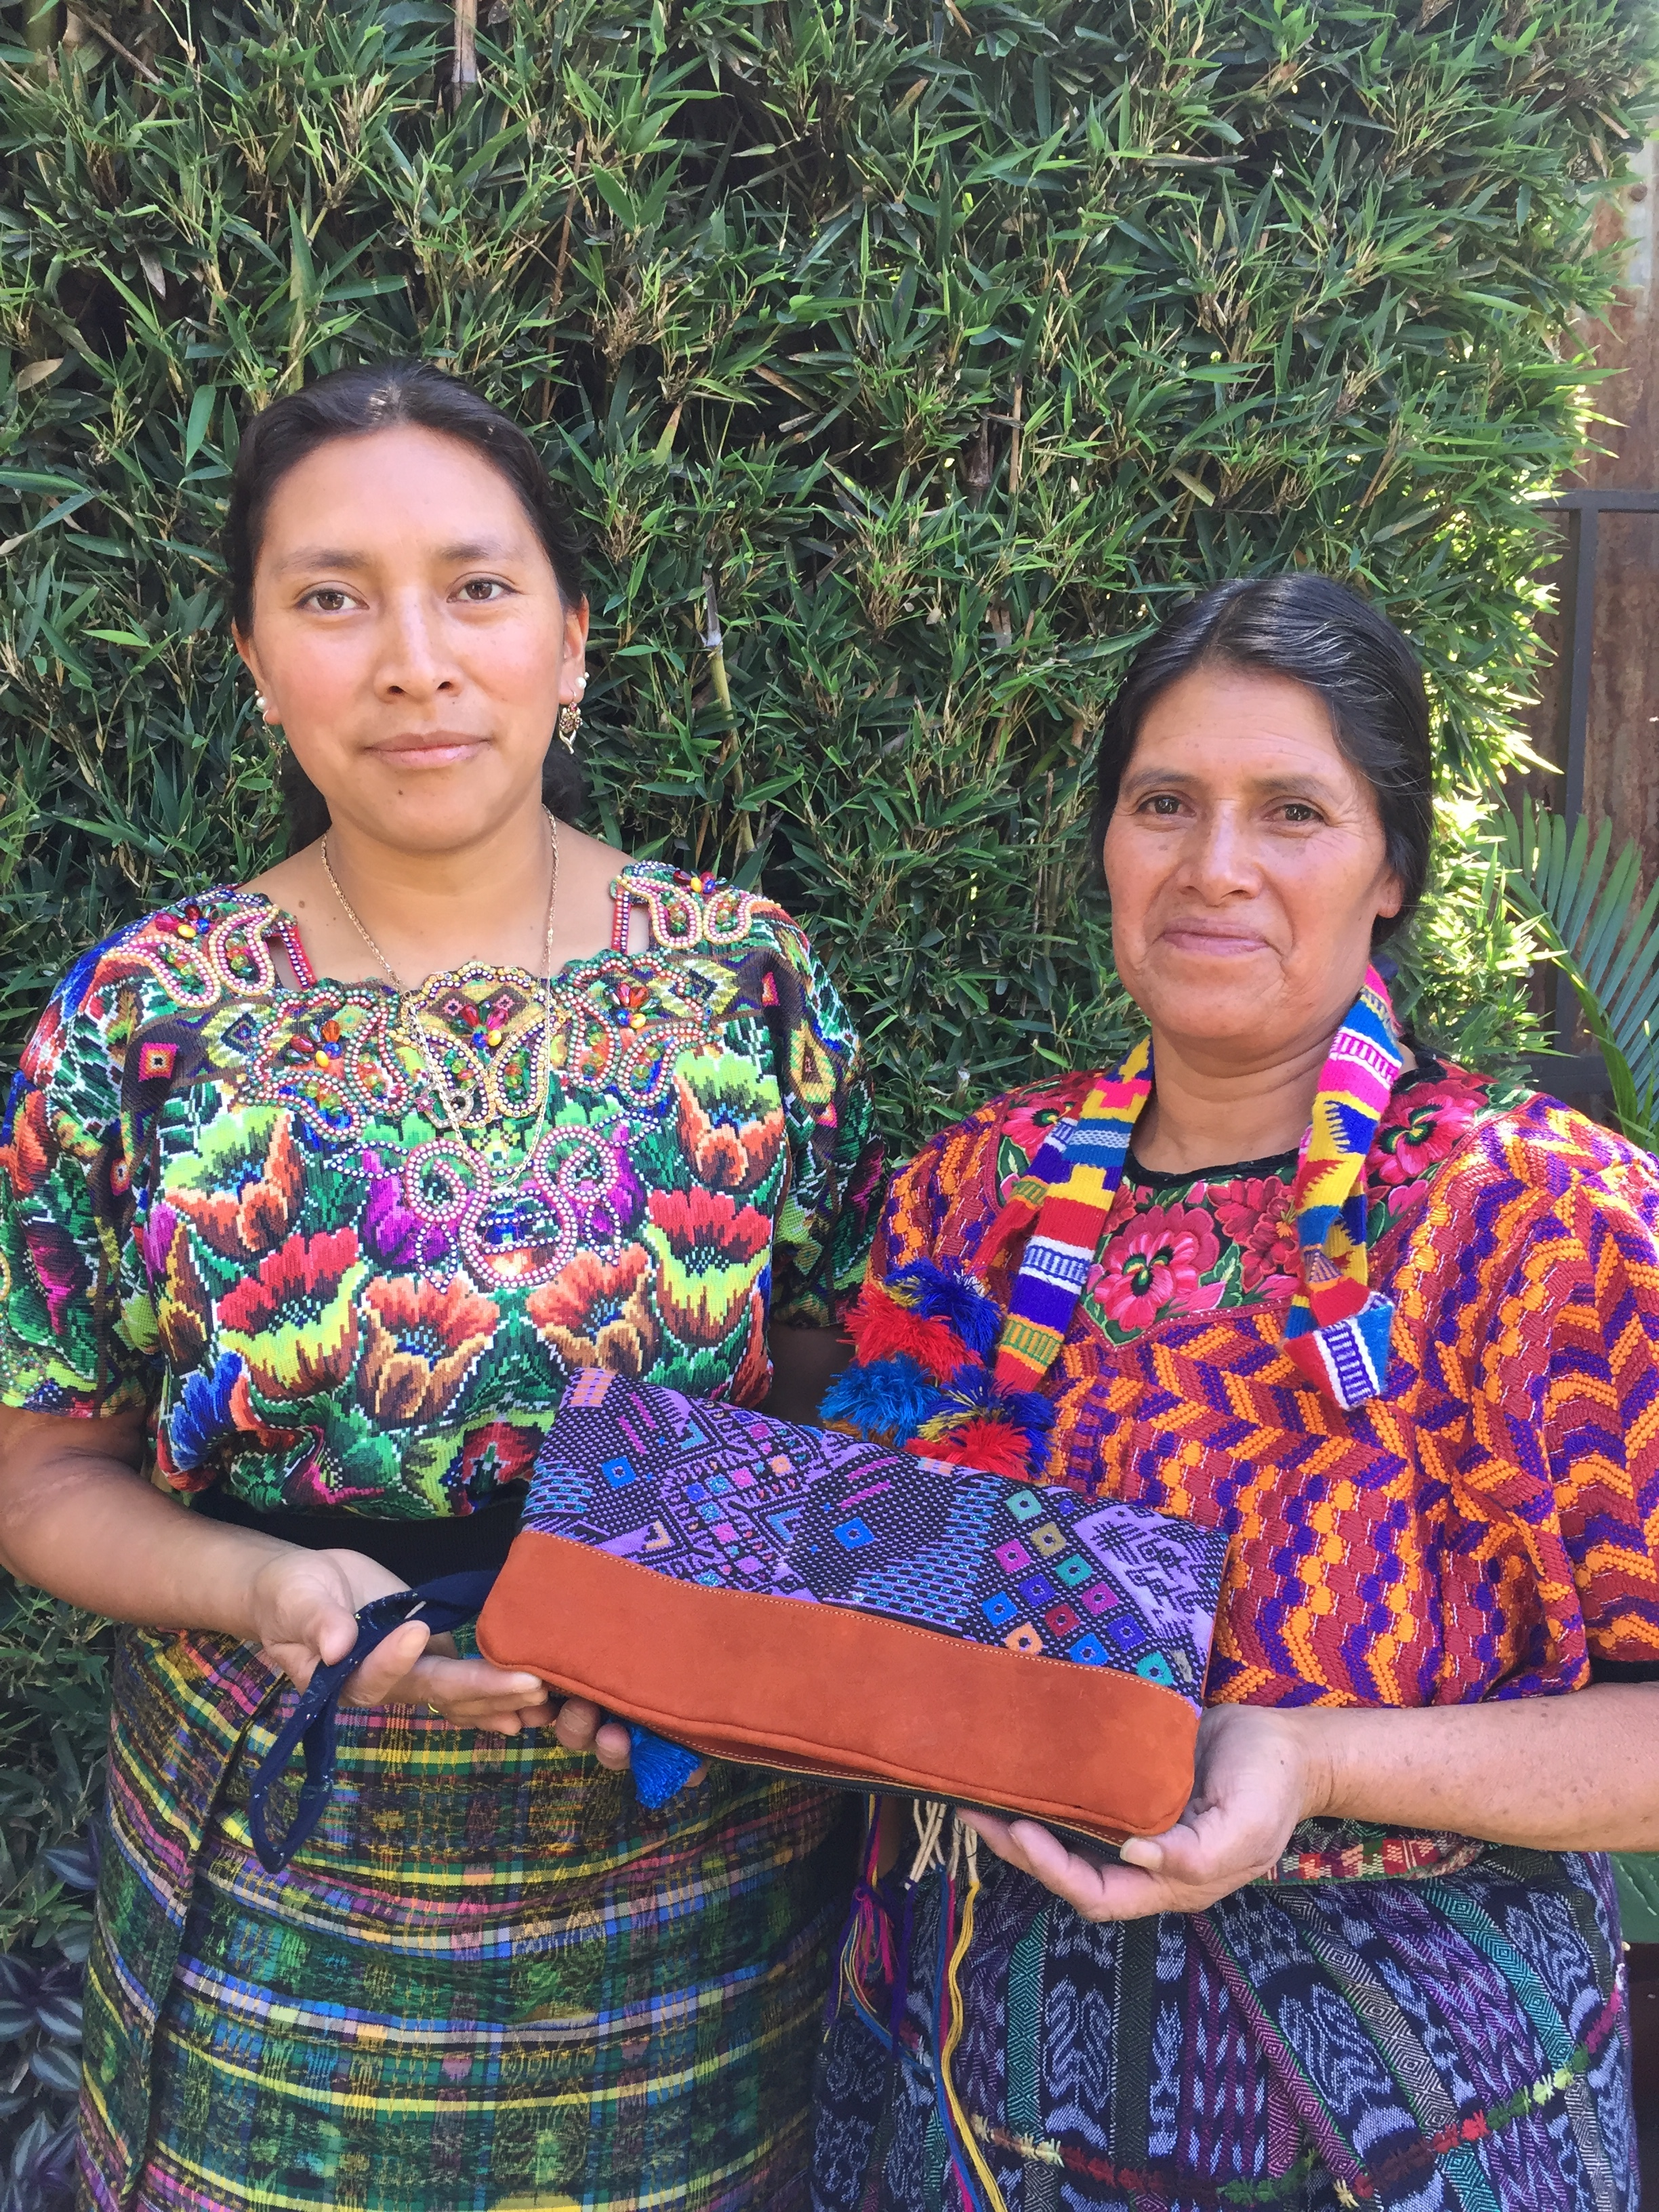 Micaela Garcia & Erika Sam - Cantel, Quetzaltenango - Friendship Bridge's clients for 4 cycles.This mother and daughter-in-law team is talented and unique. They produce our colorful soft fabric trays, as well as our clutches and bags, combining re-purposed huipils and leather.